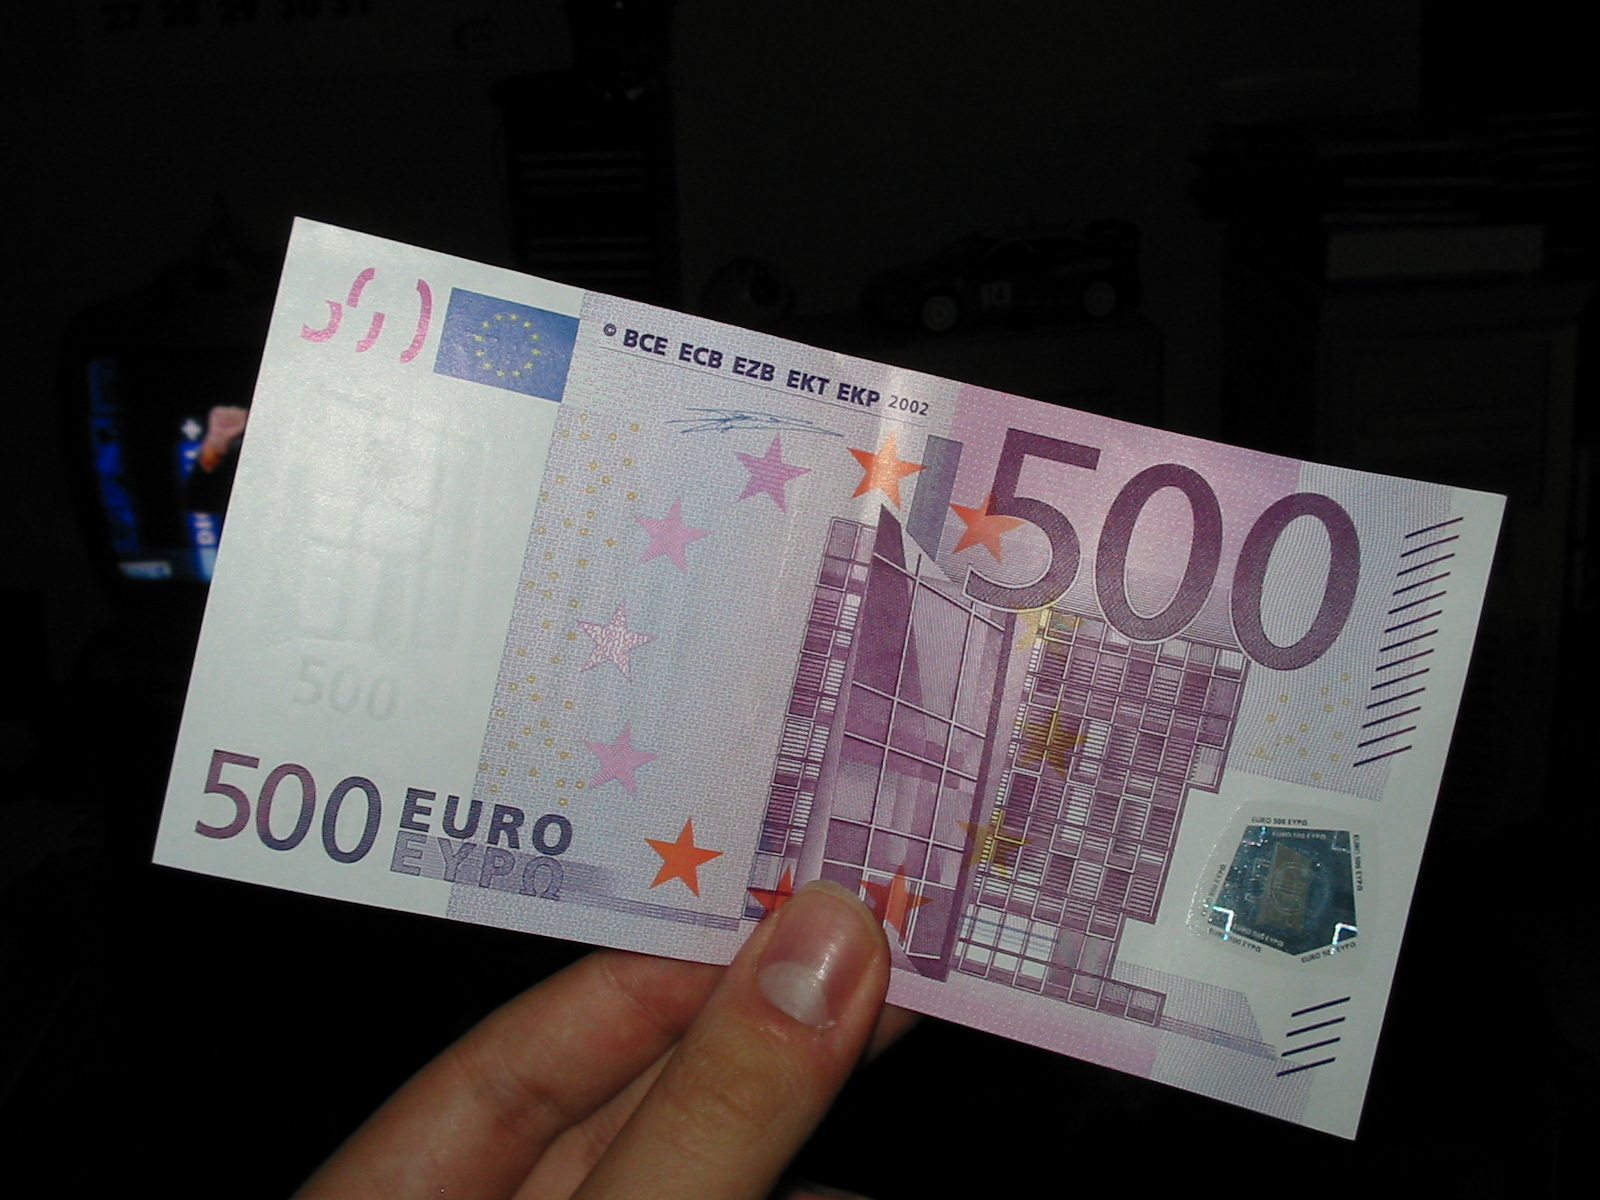 Cash payments for goods and services to be capped at €1,000